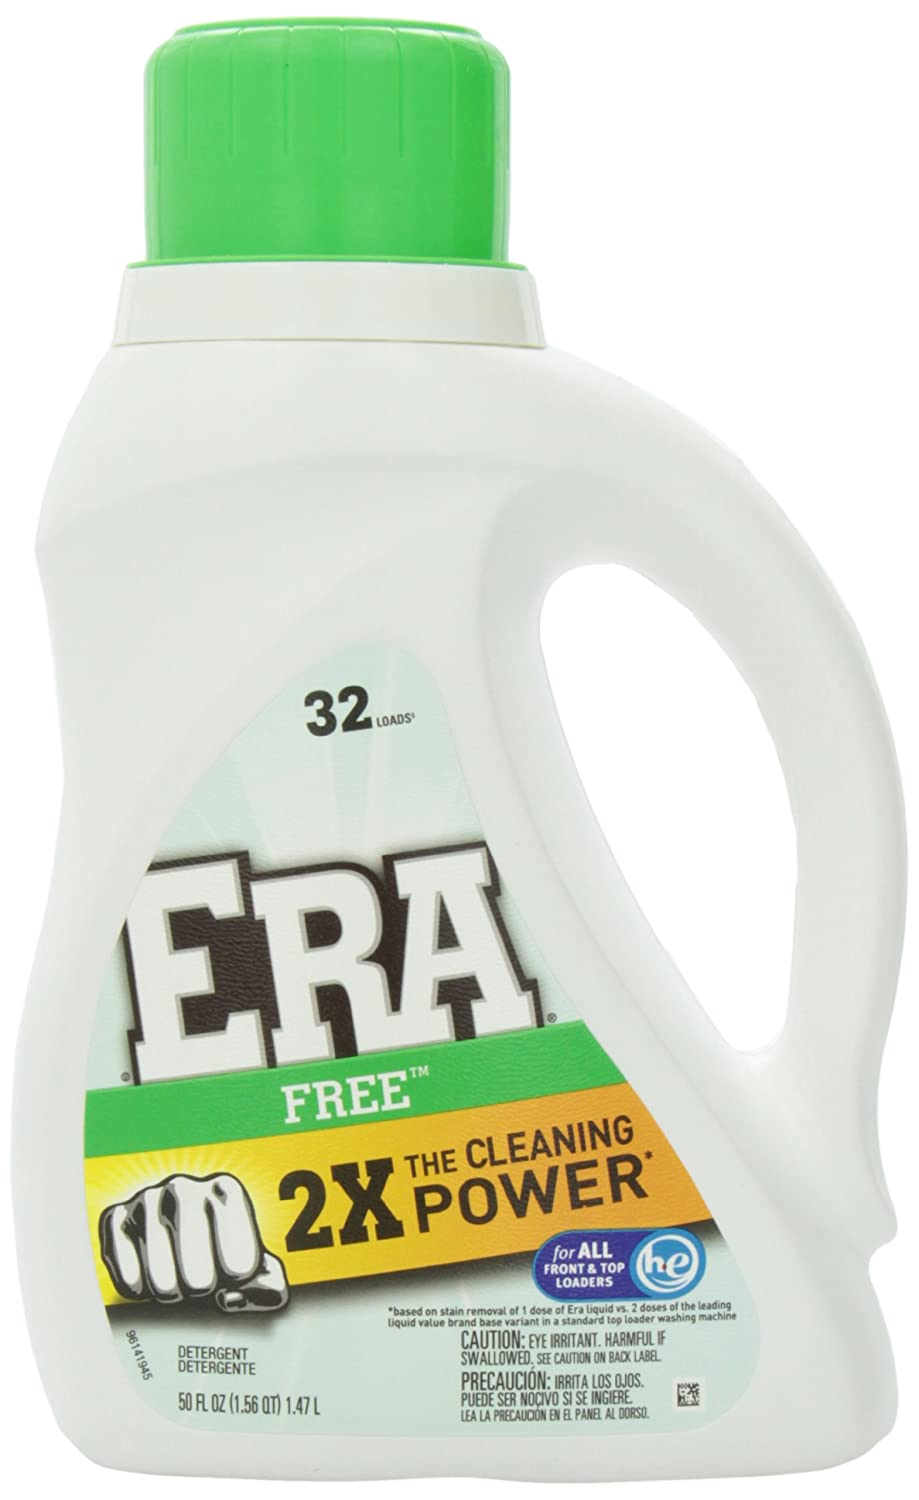 Era Concentrated Liquid Detergent - 150 oz - Free